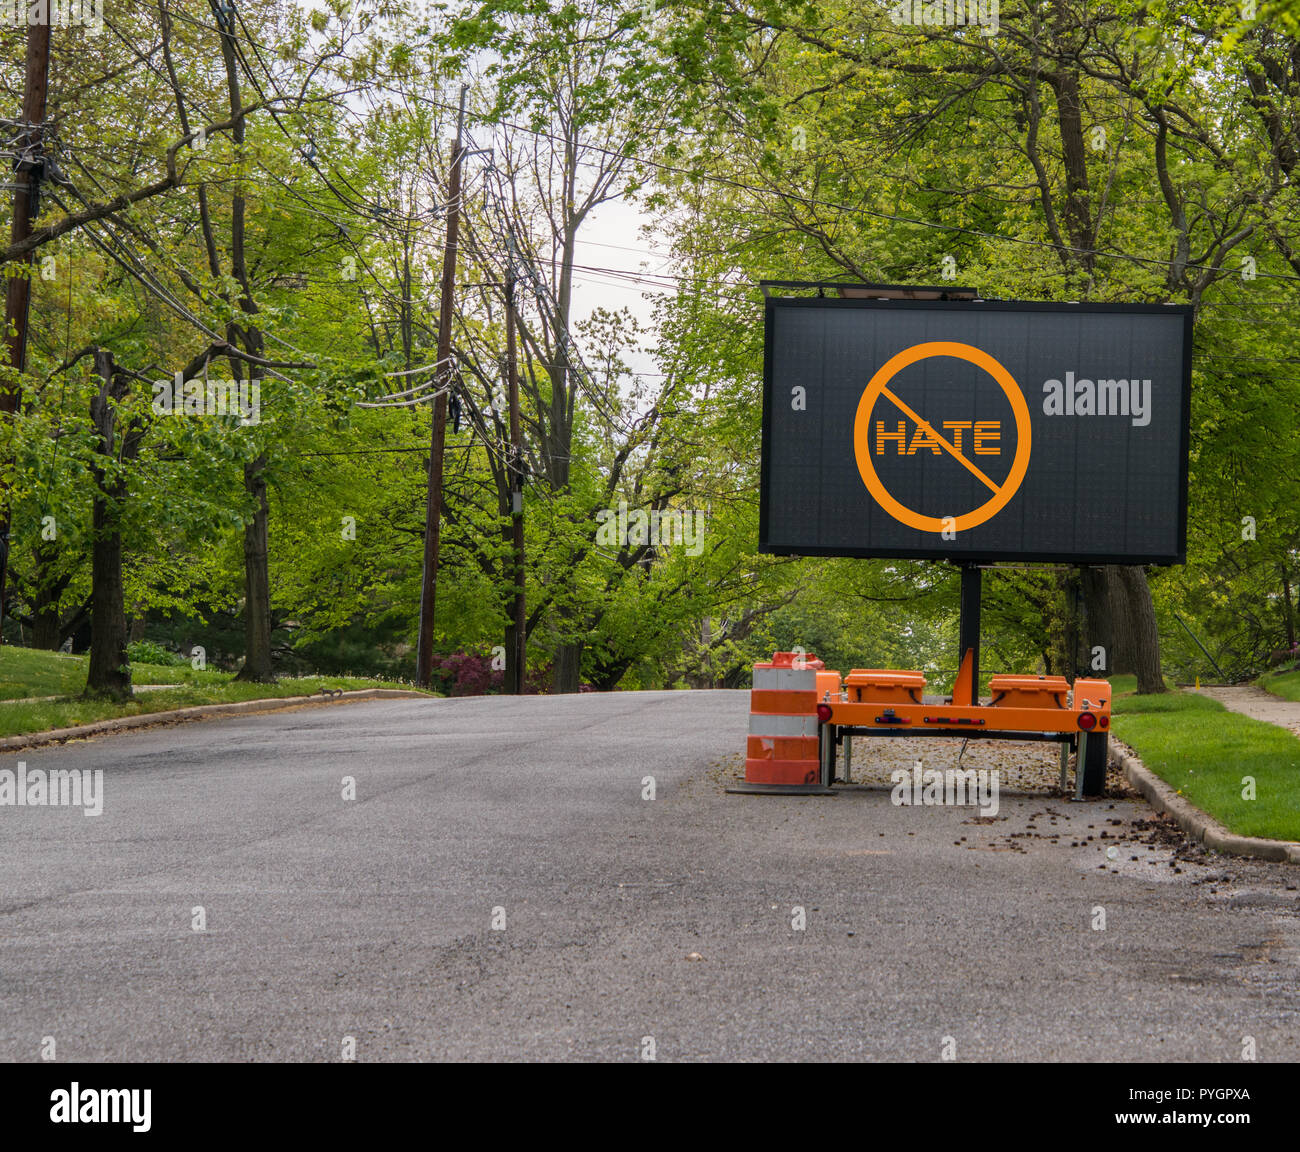 Electric traffic street sign on quiet neighborhood street that has a no hate symbol - Stock Image